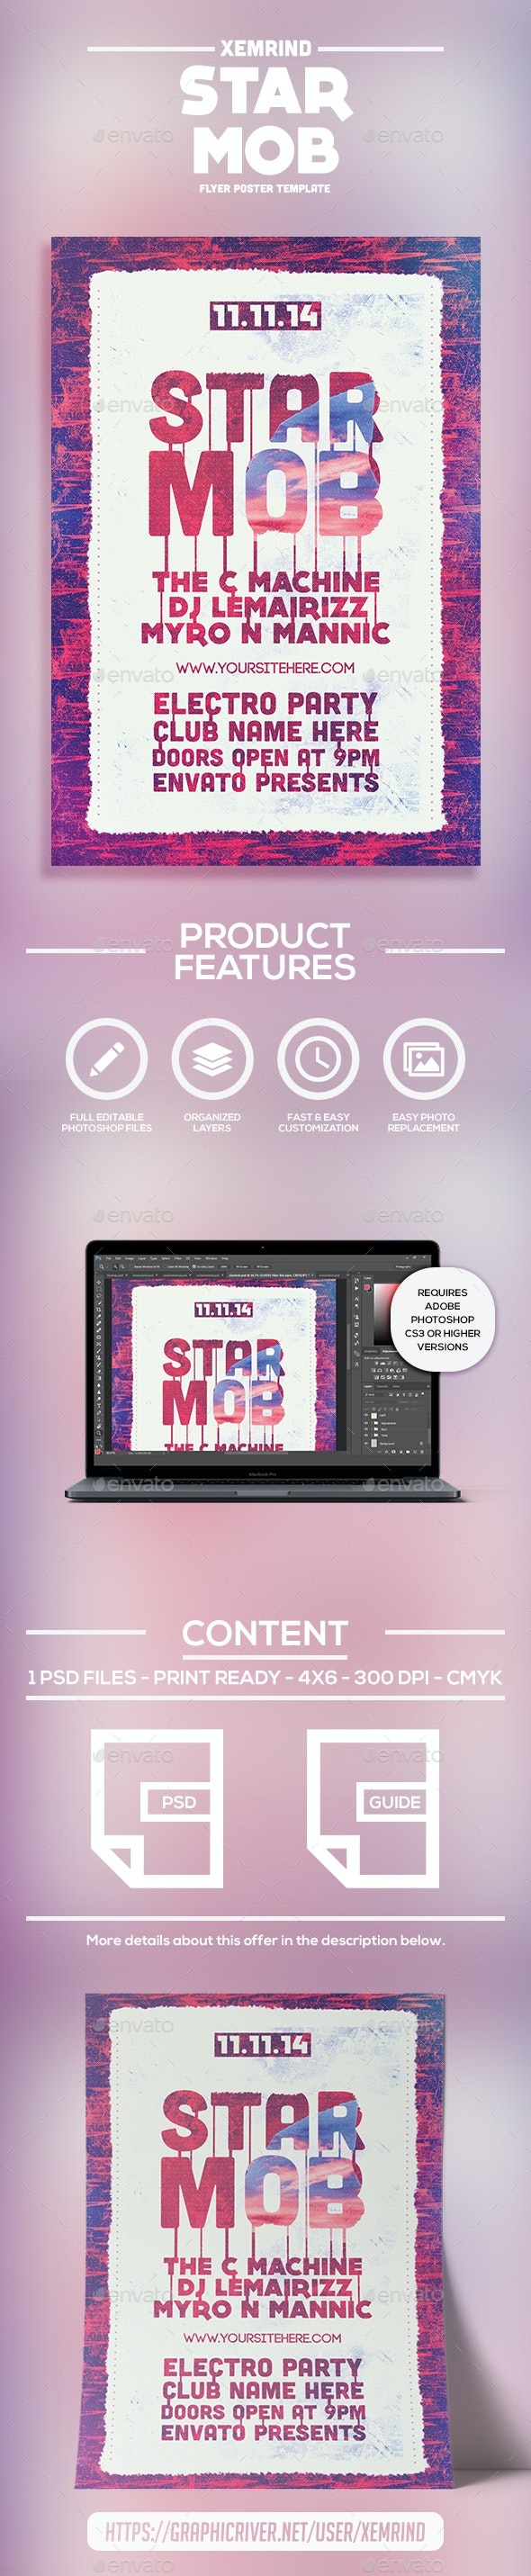 Star Mob Flyer Template - Clubs & Parties Events